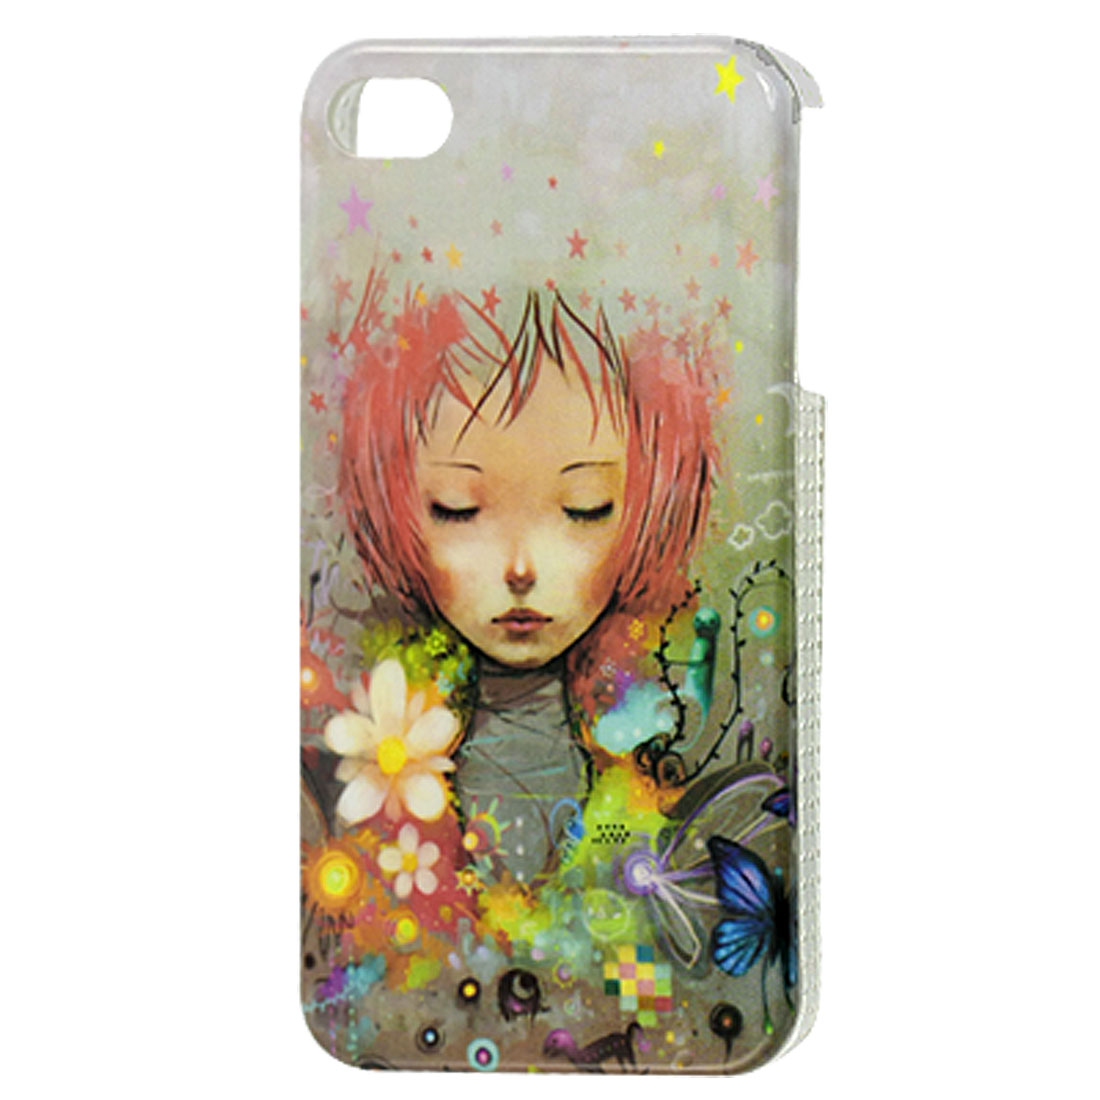 Cartoon Girl Flower Pattern Back Case Cover for iPhone 4 4G 4S